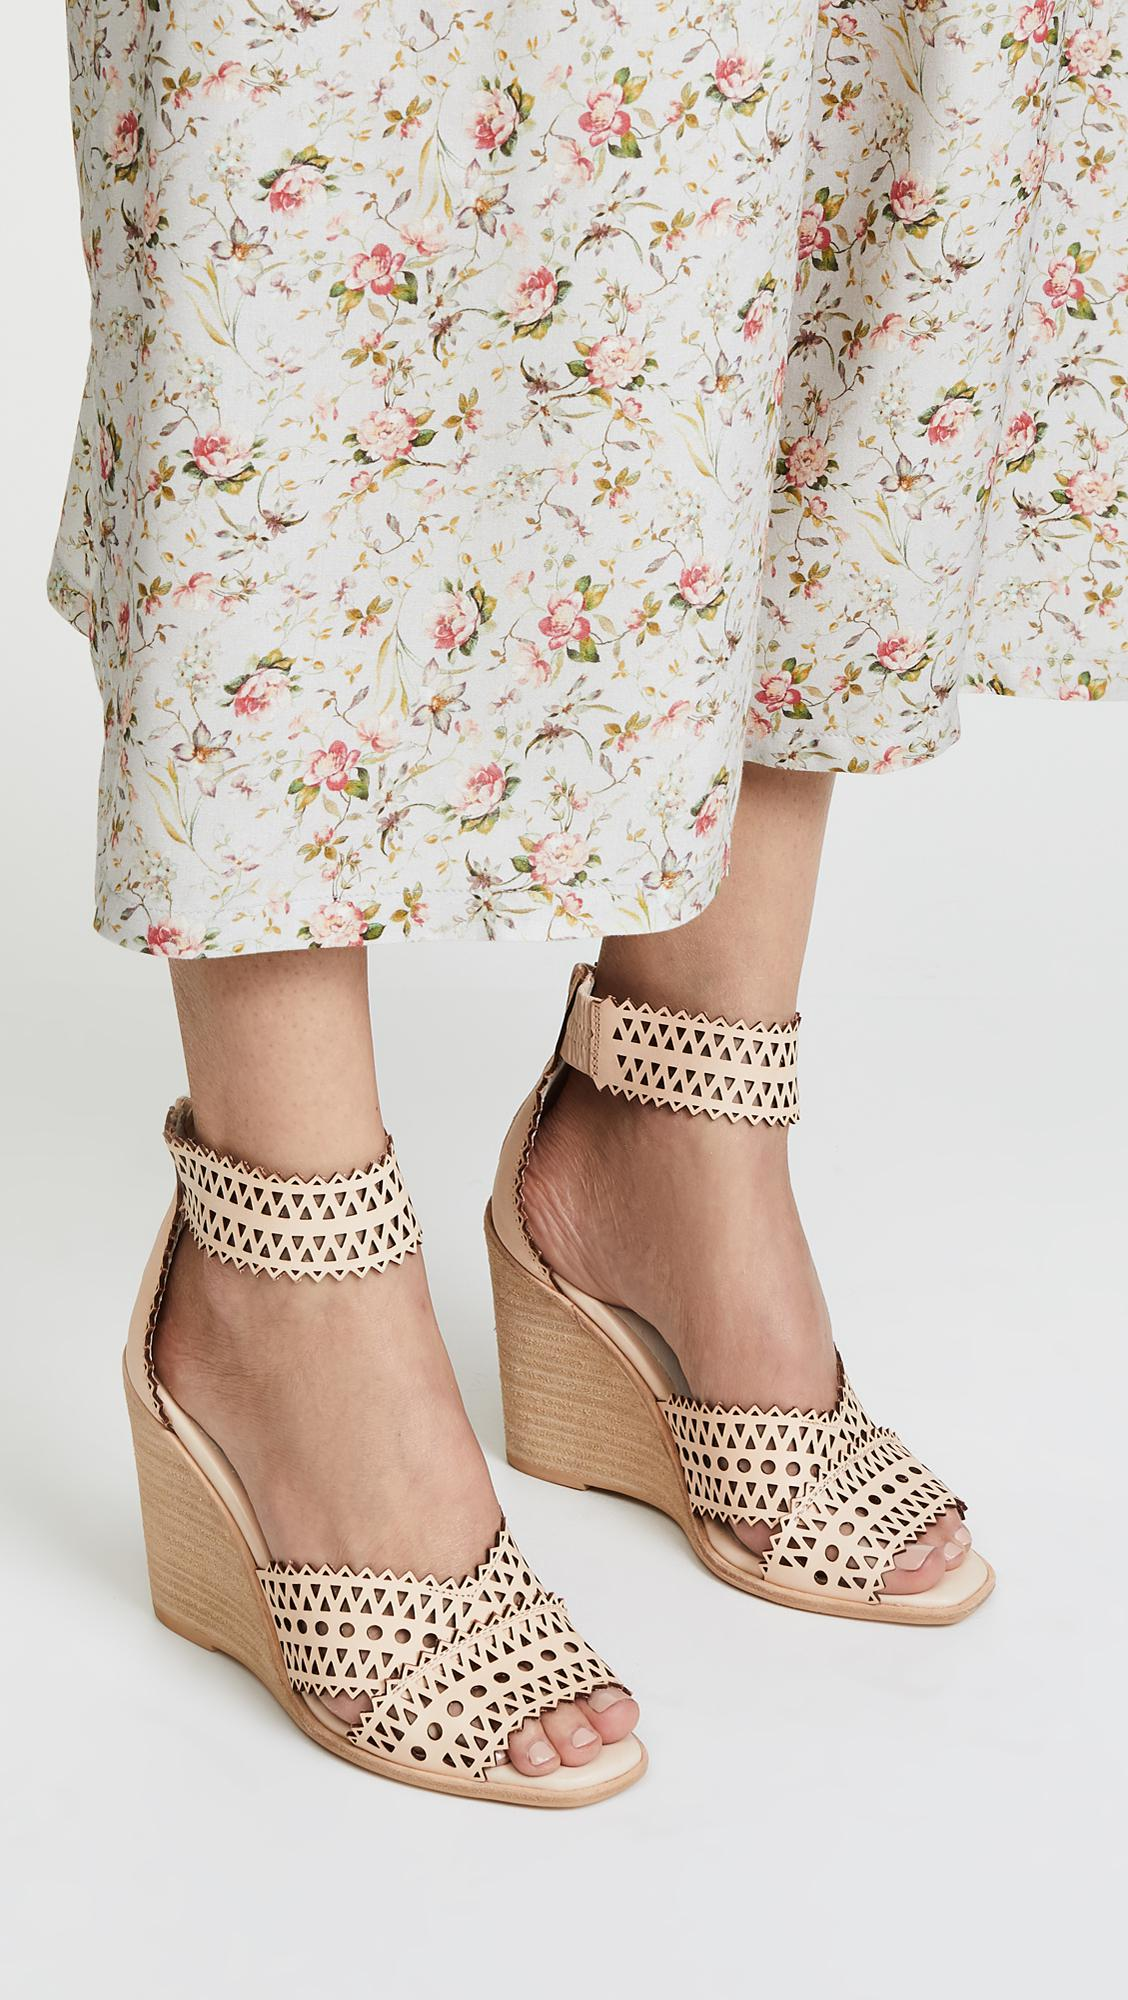 75e7b0af3e6 Jeffrey Campbell Besante Woven Wedges in Natural - Lyst